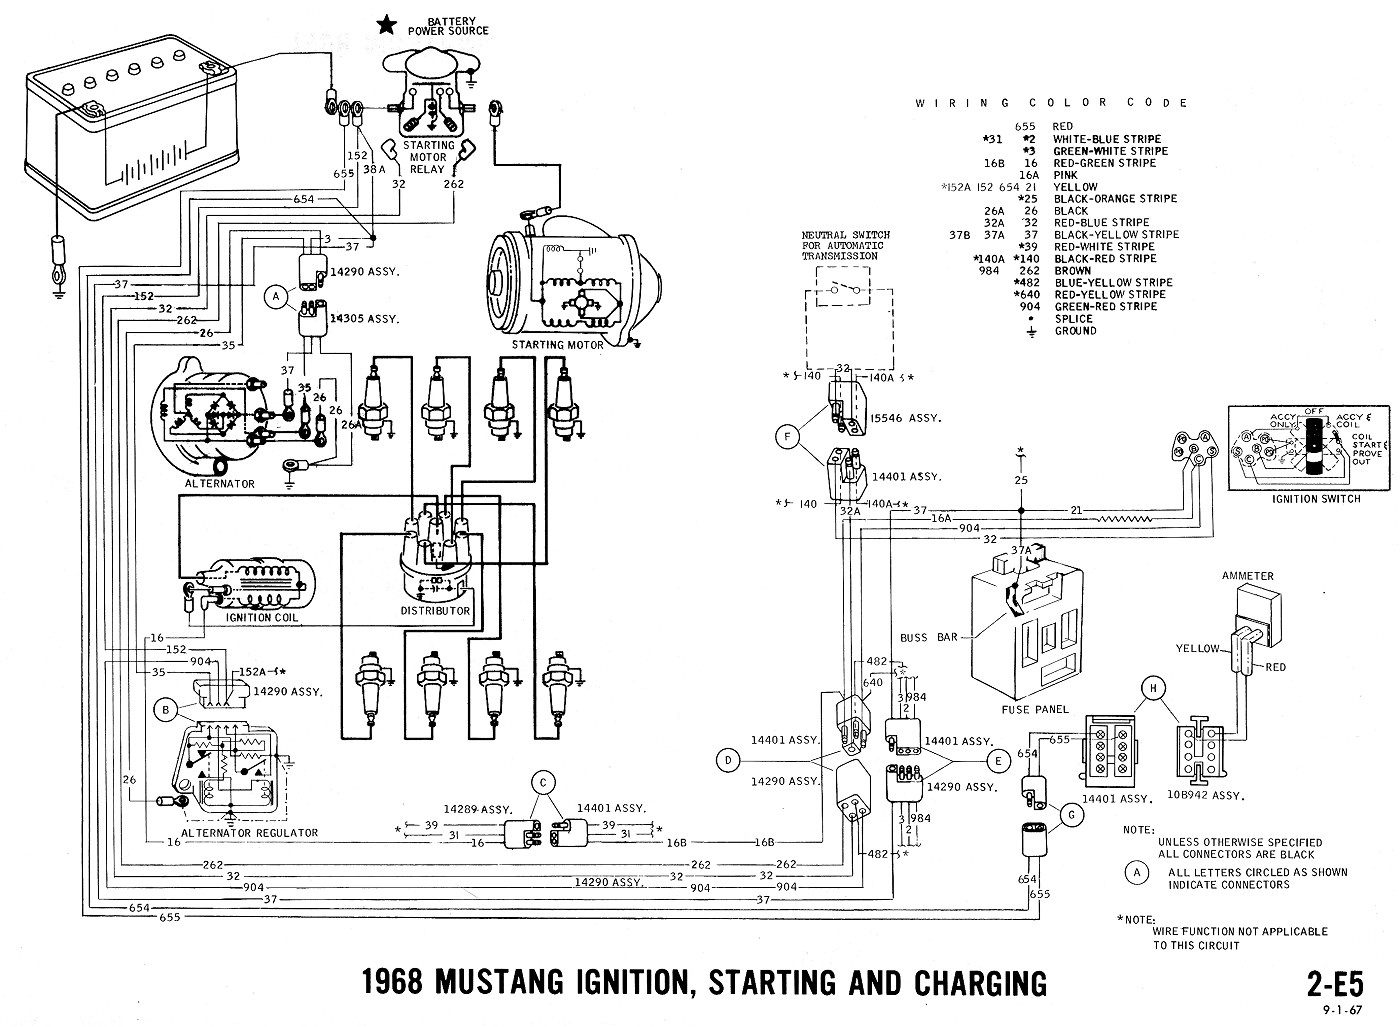 Classic Mustang Wiring Diagram Library 73 Vw Alternator Charging Starting